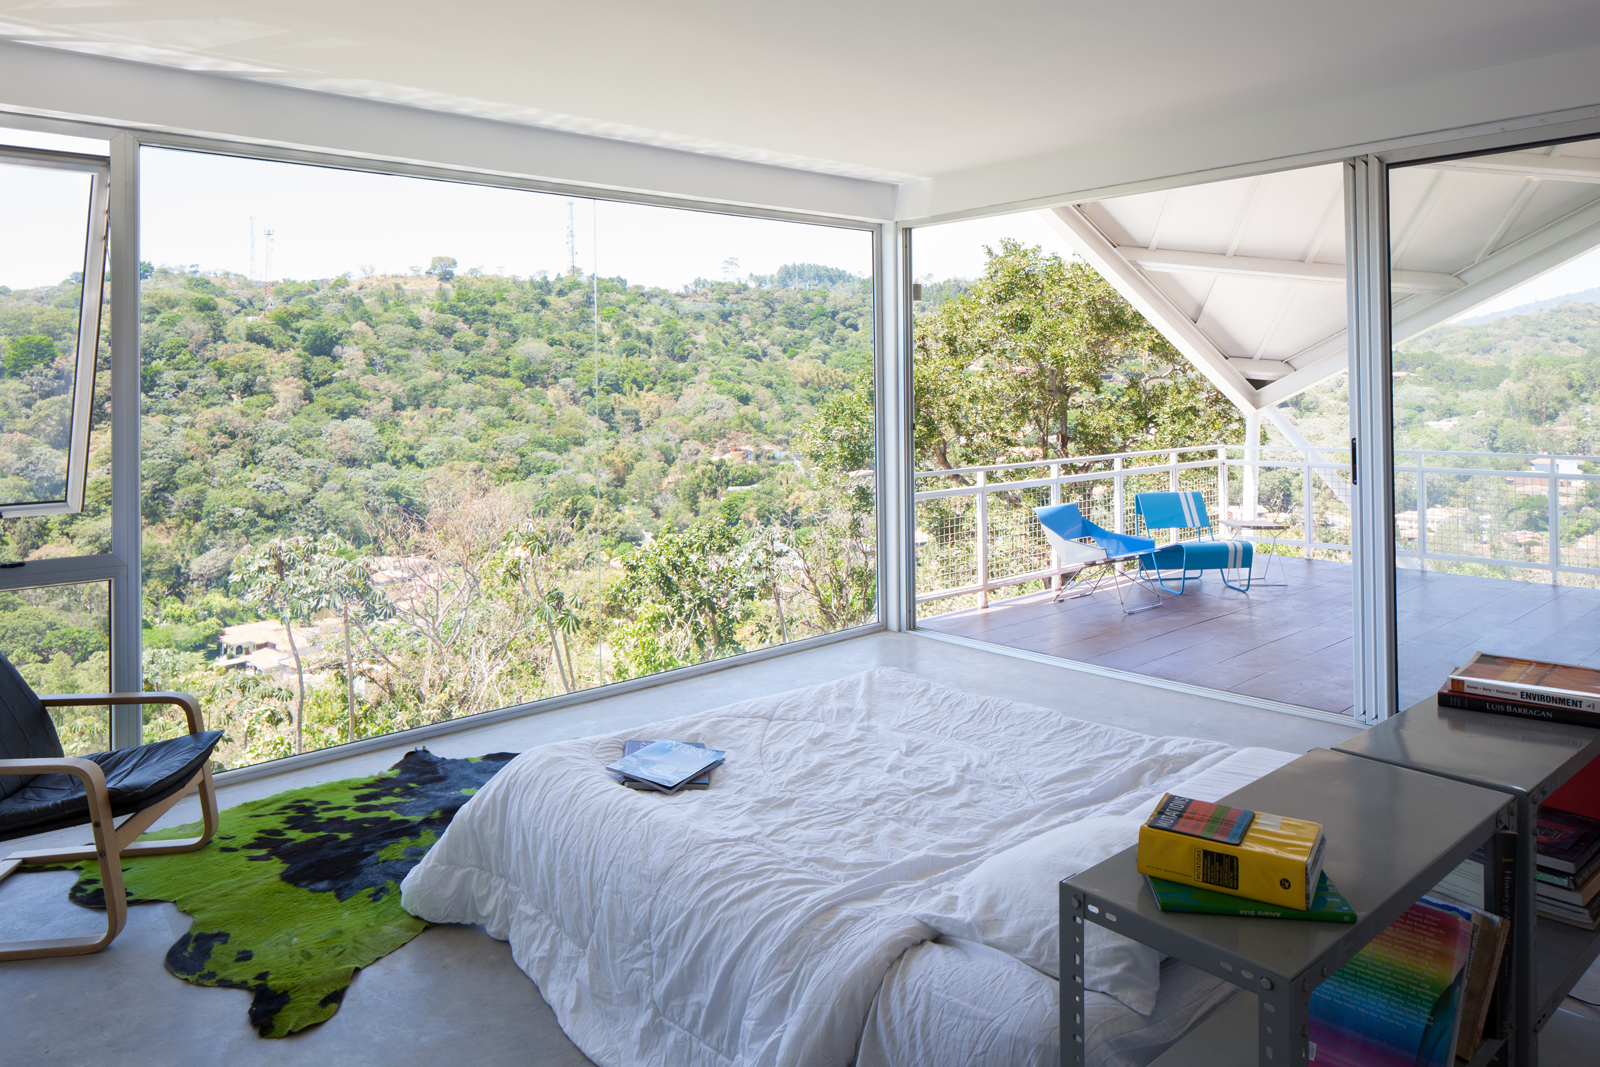 master bedroom with floor-to-ceiling glass walls in a modern house in el salvador with creative roofing